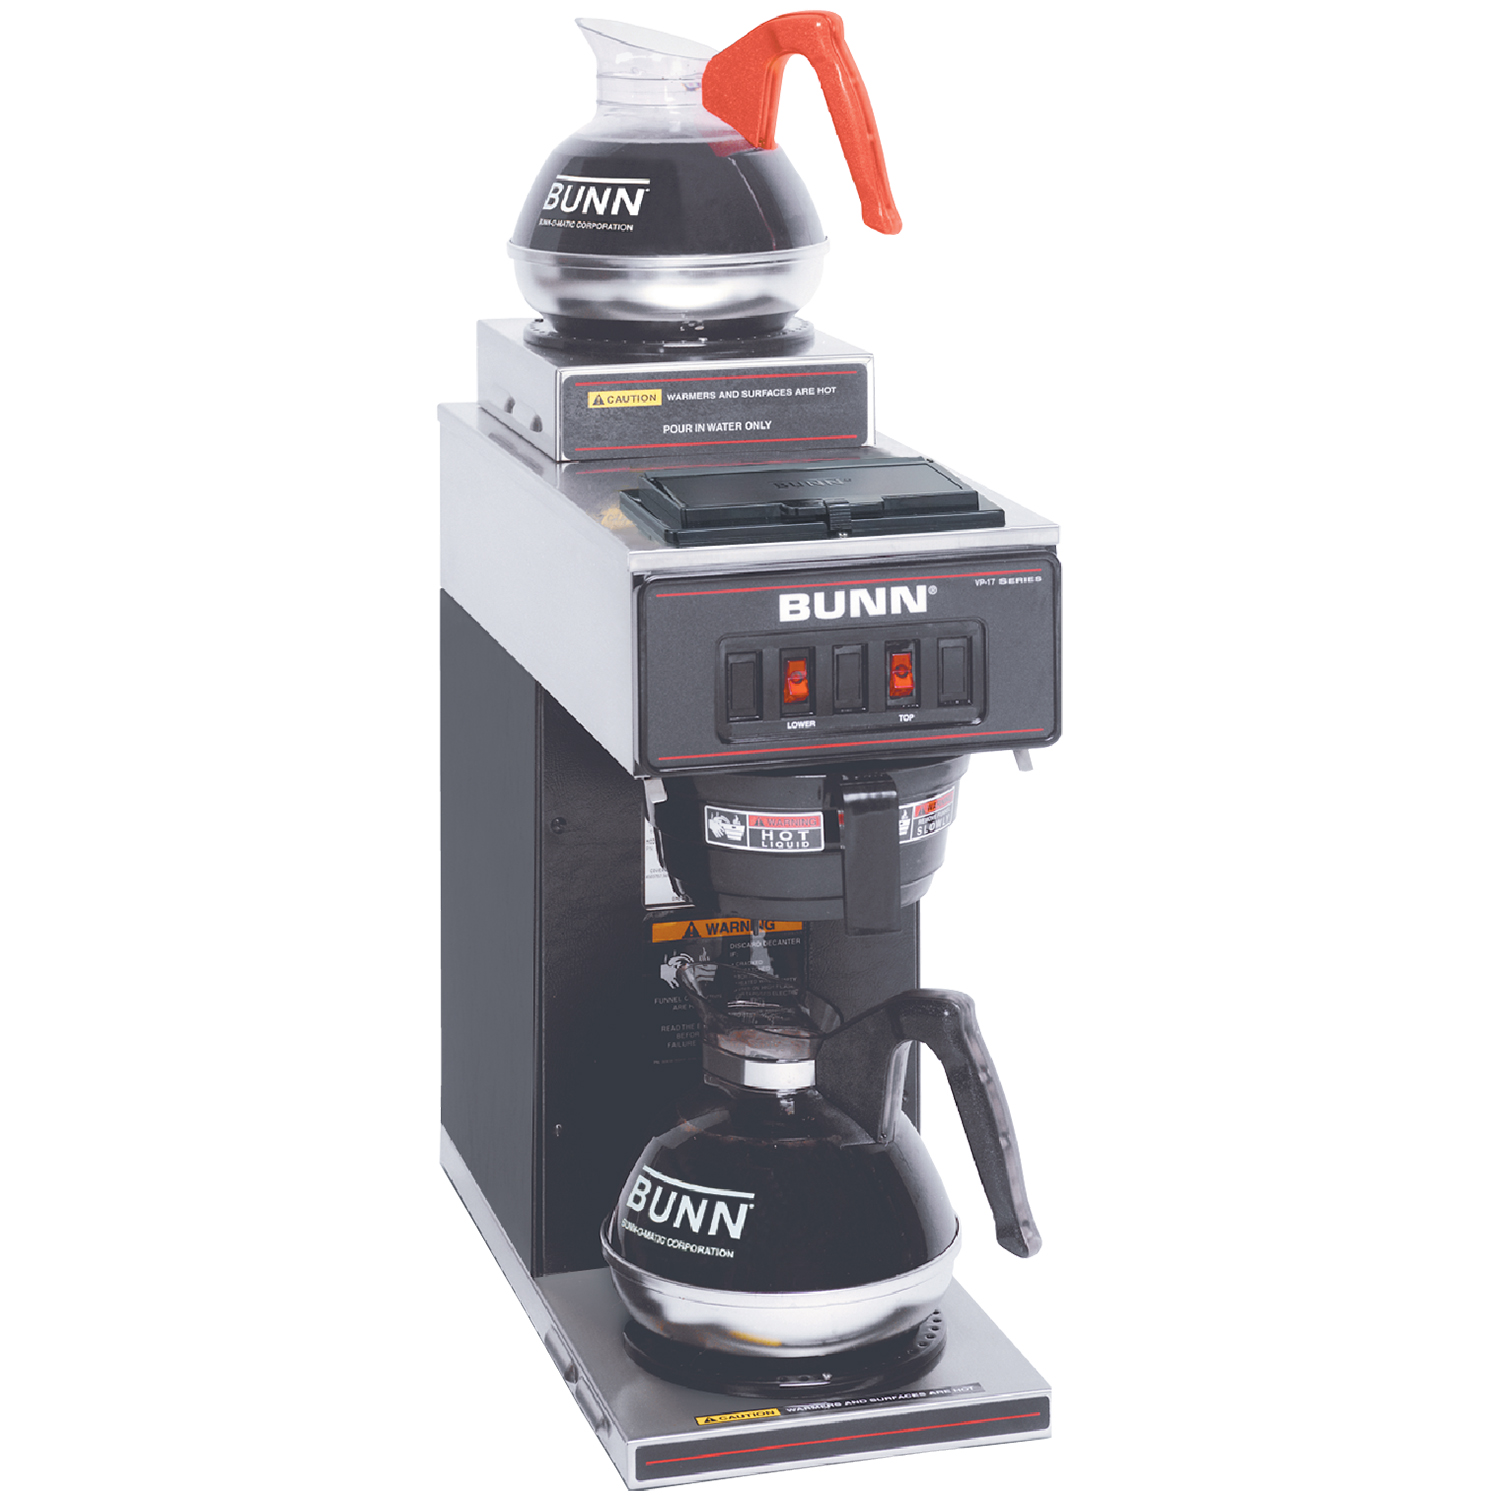 Bunn 24 Cup Coffee Maker Grand Toy